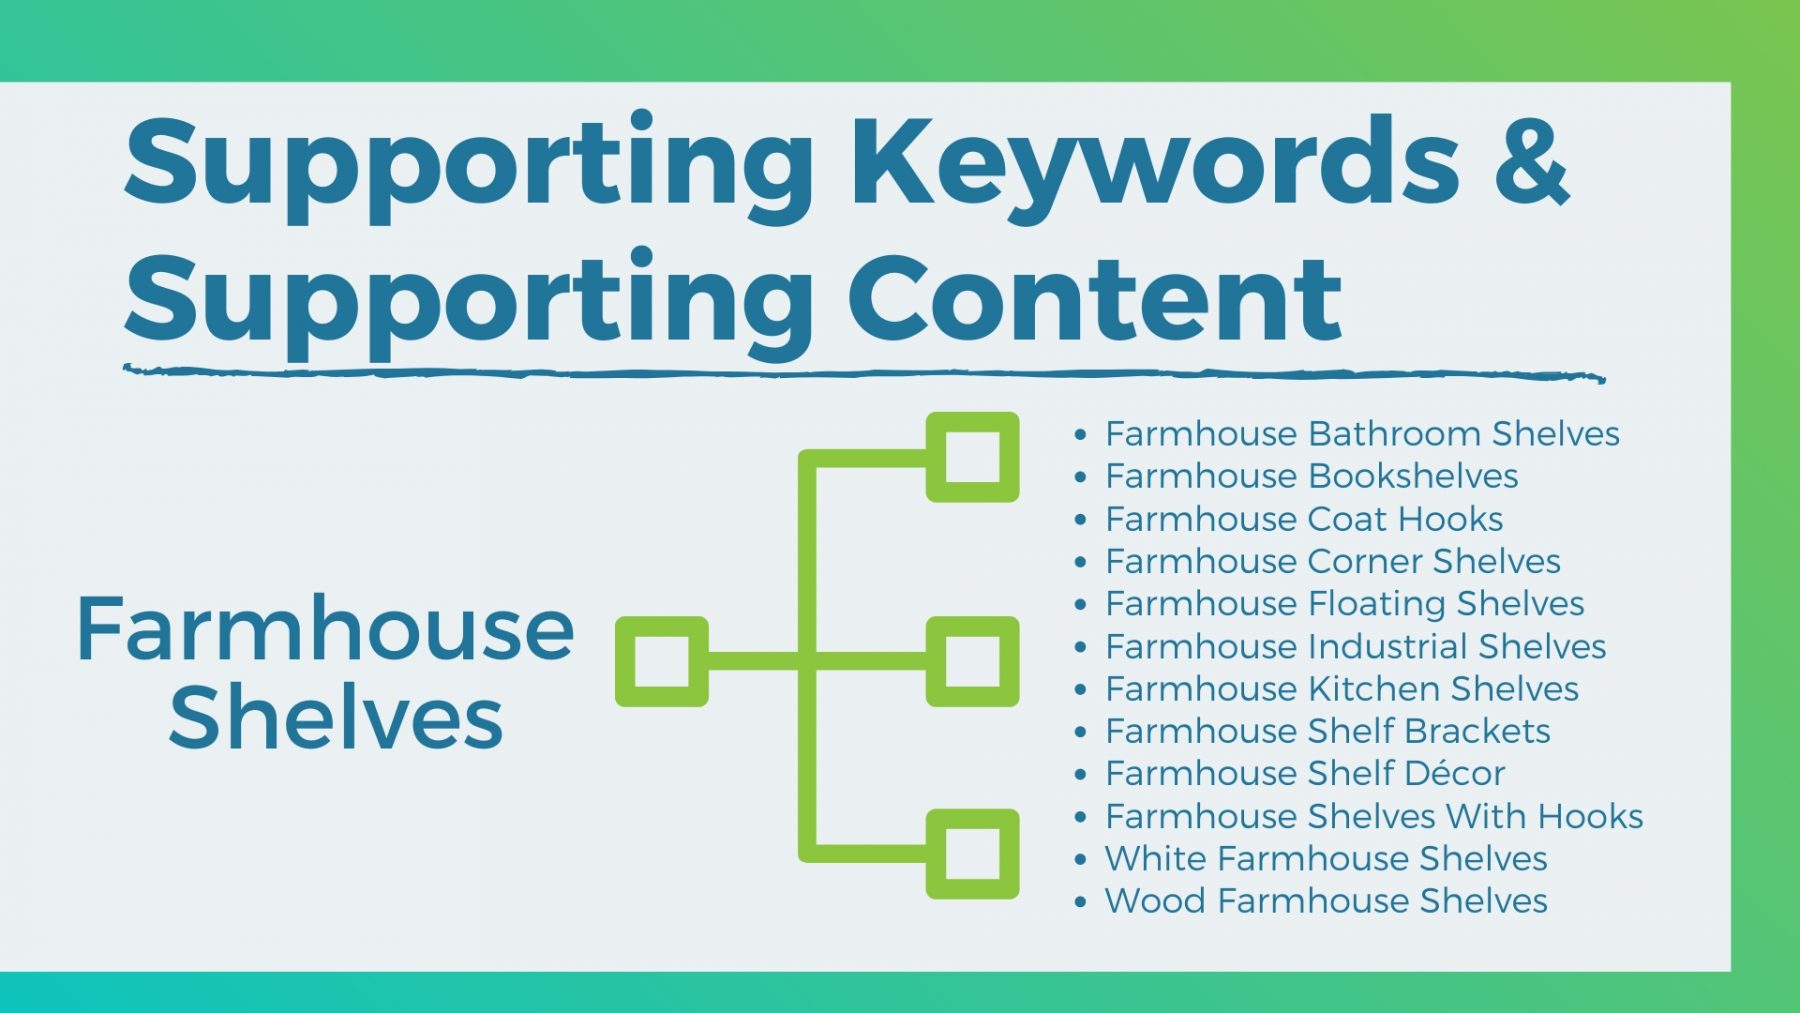 create supporting content targeting keywords